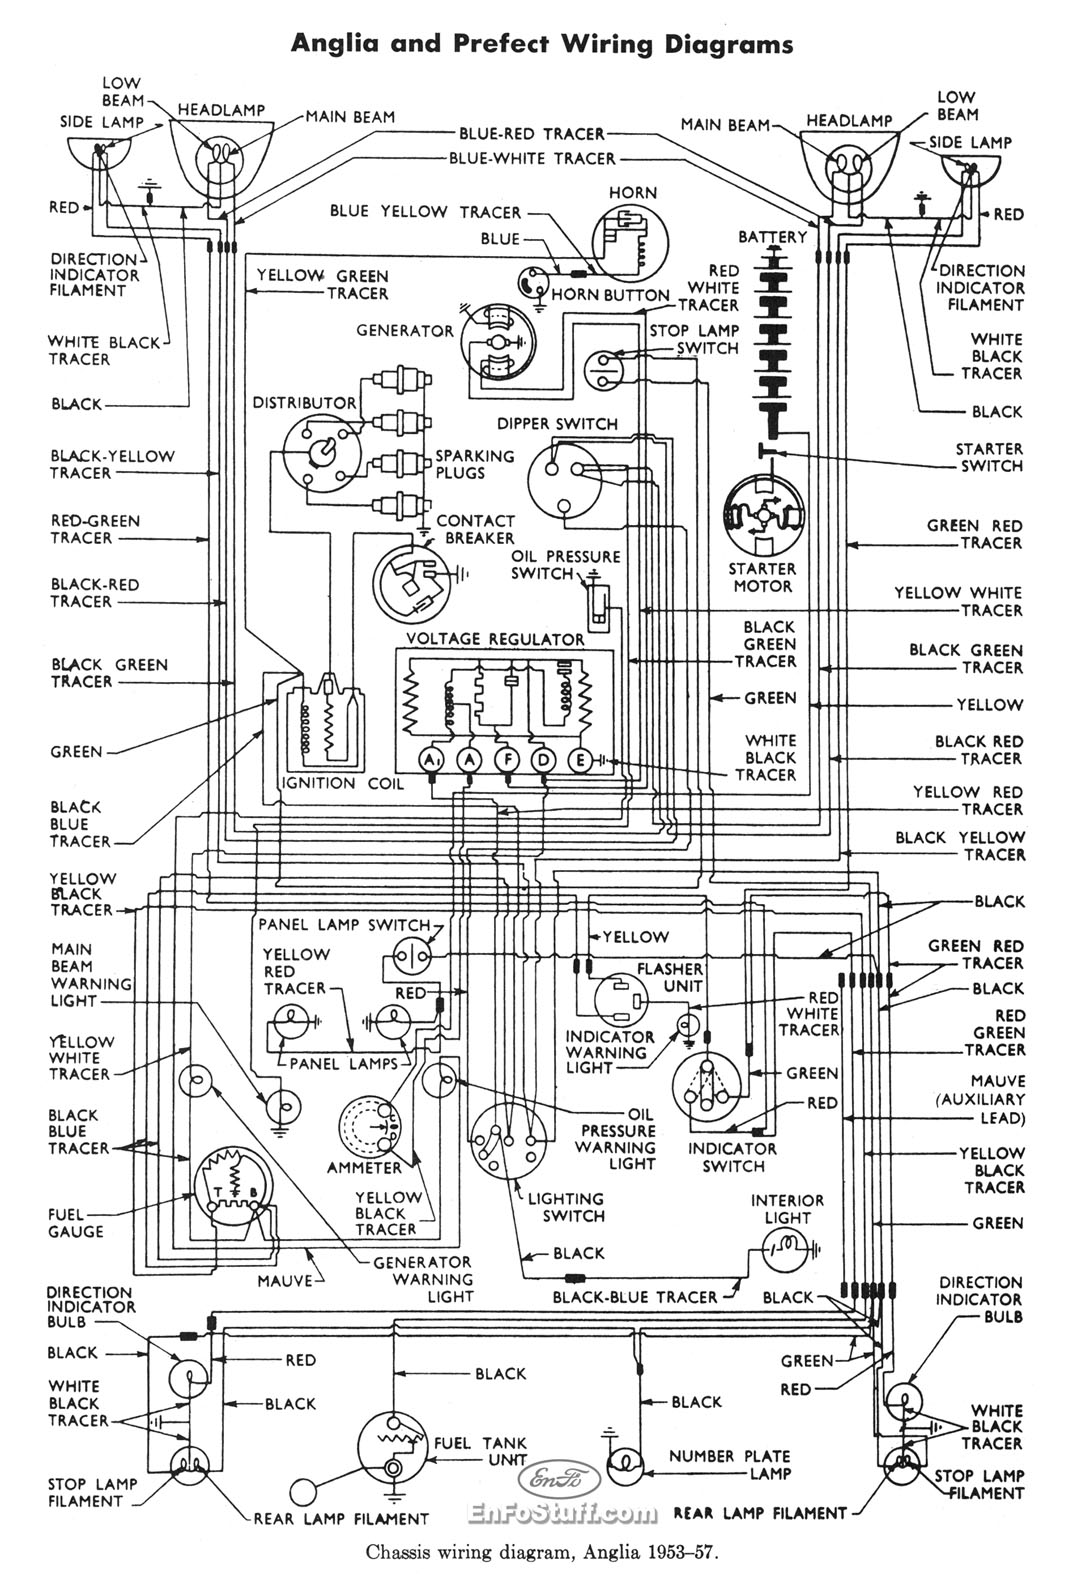 1952 ford tractor wiring diagram